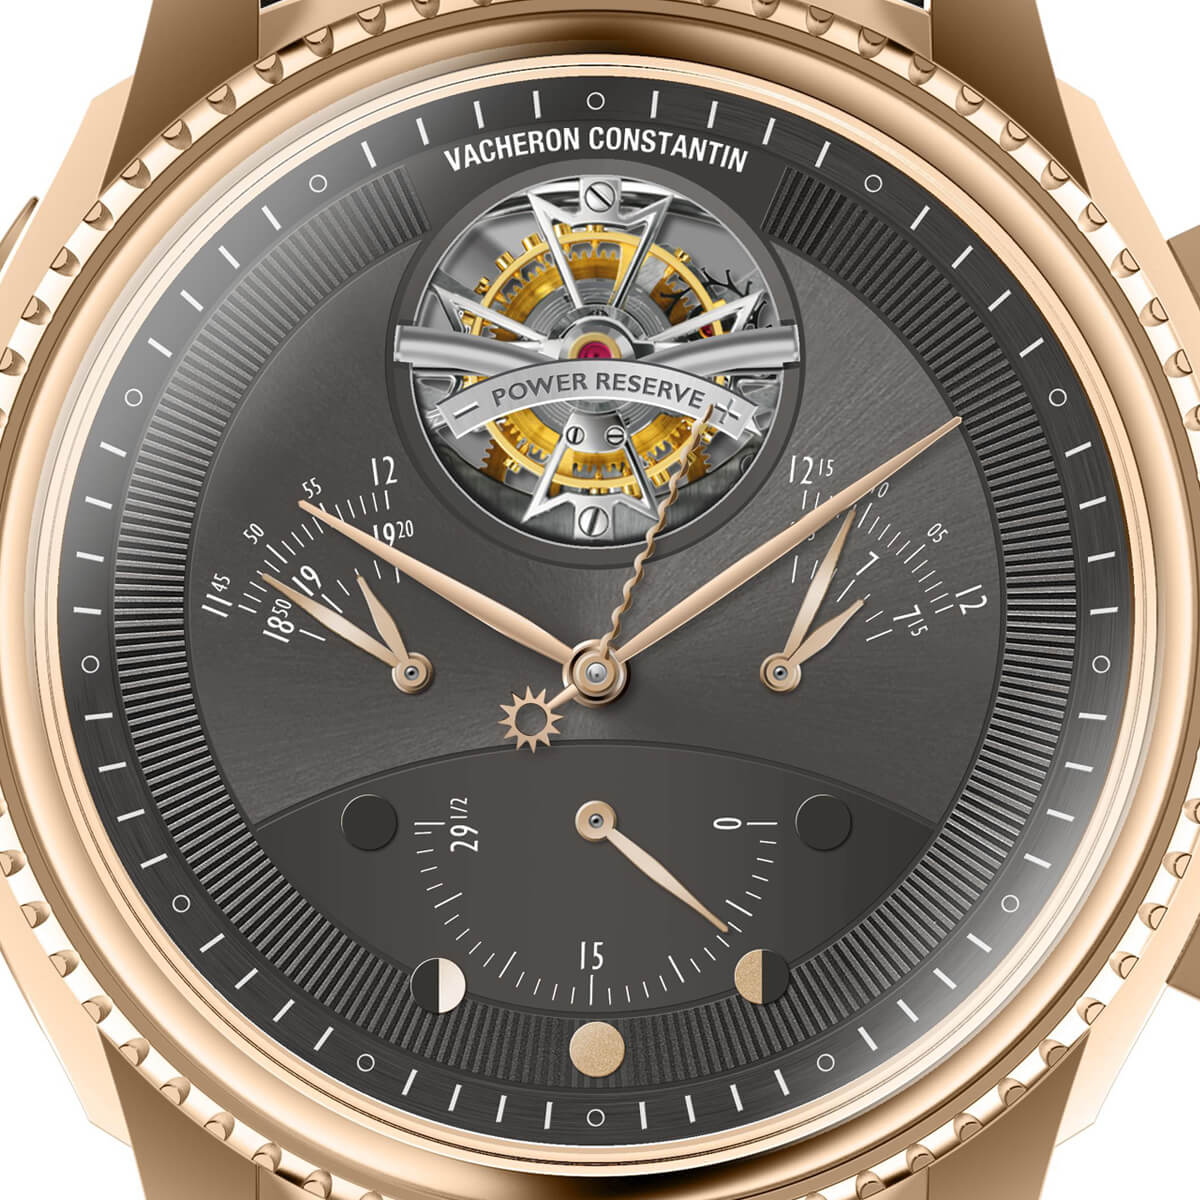 Vacheron Constantin Les Cabinotiers Grand Complication Split-Second Chronograph Tempo